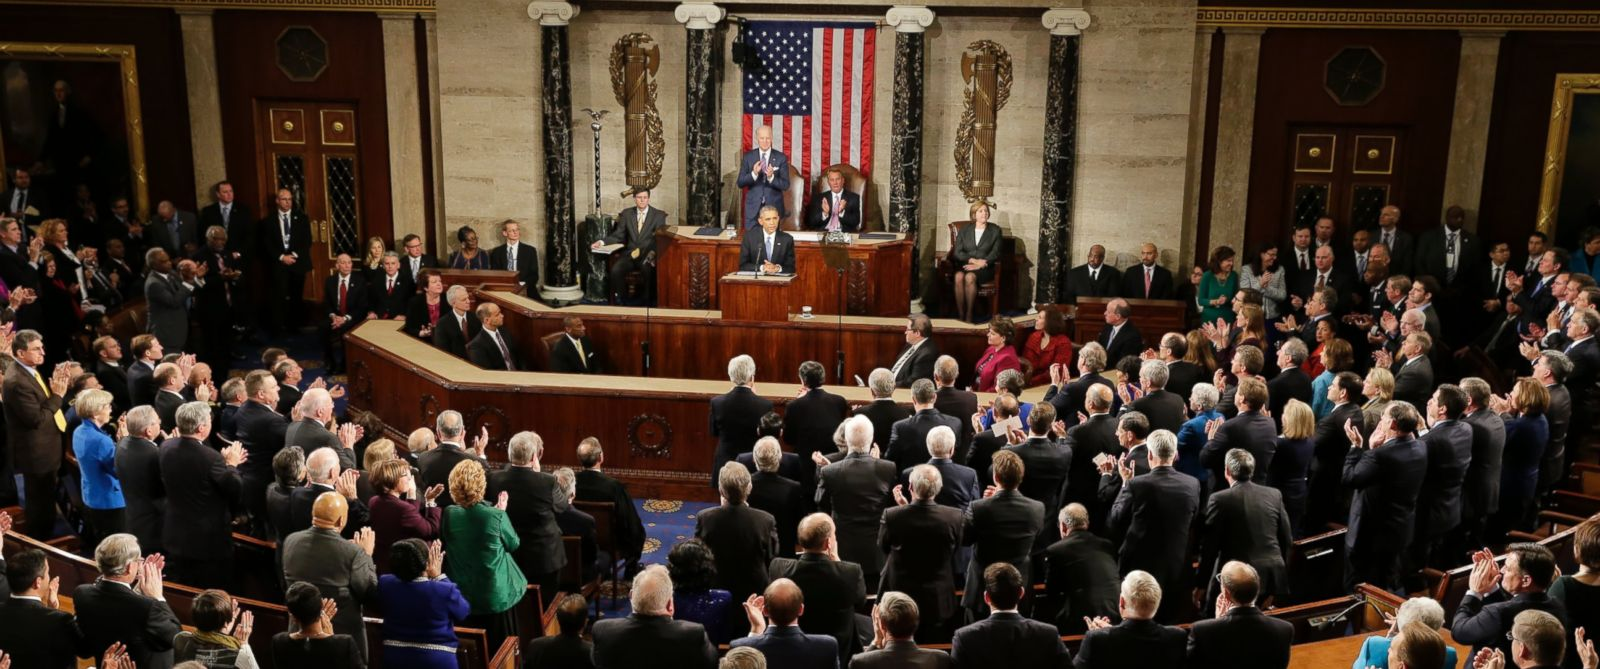 obama to meet with congress